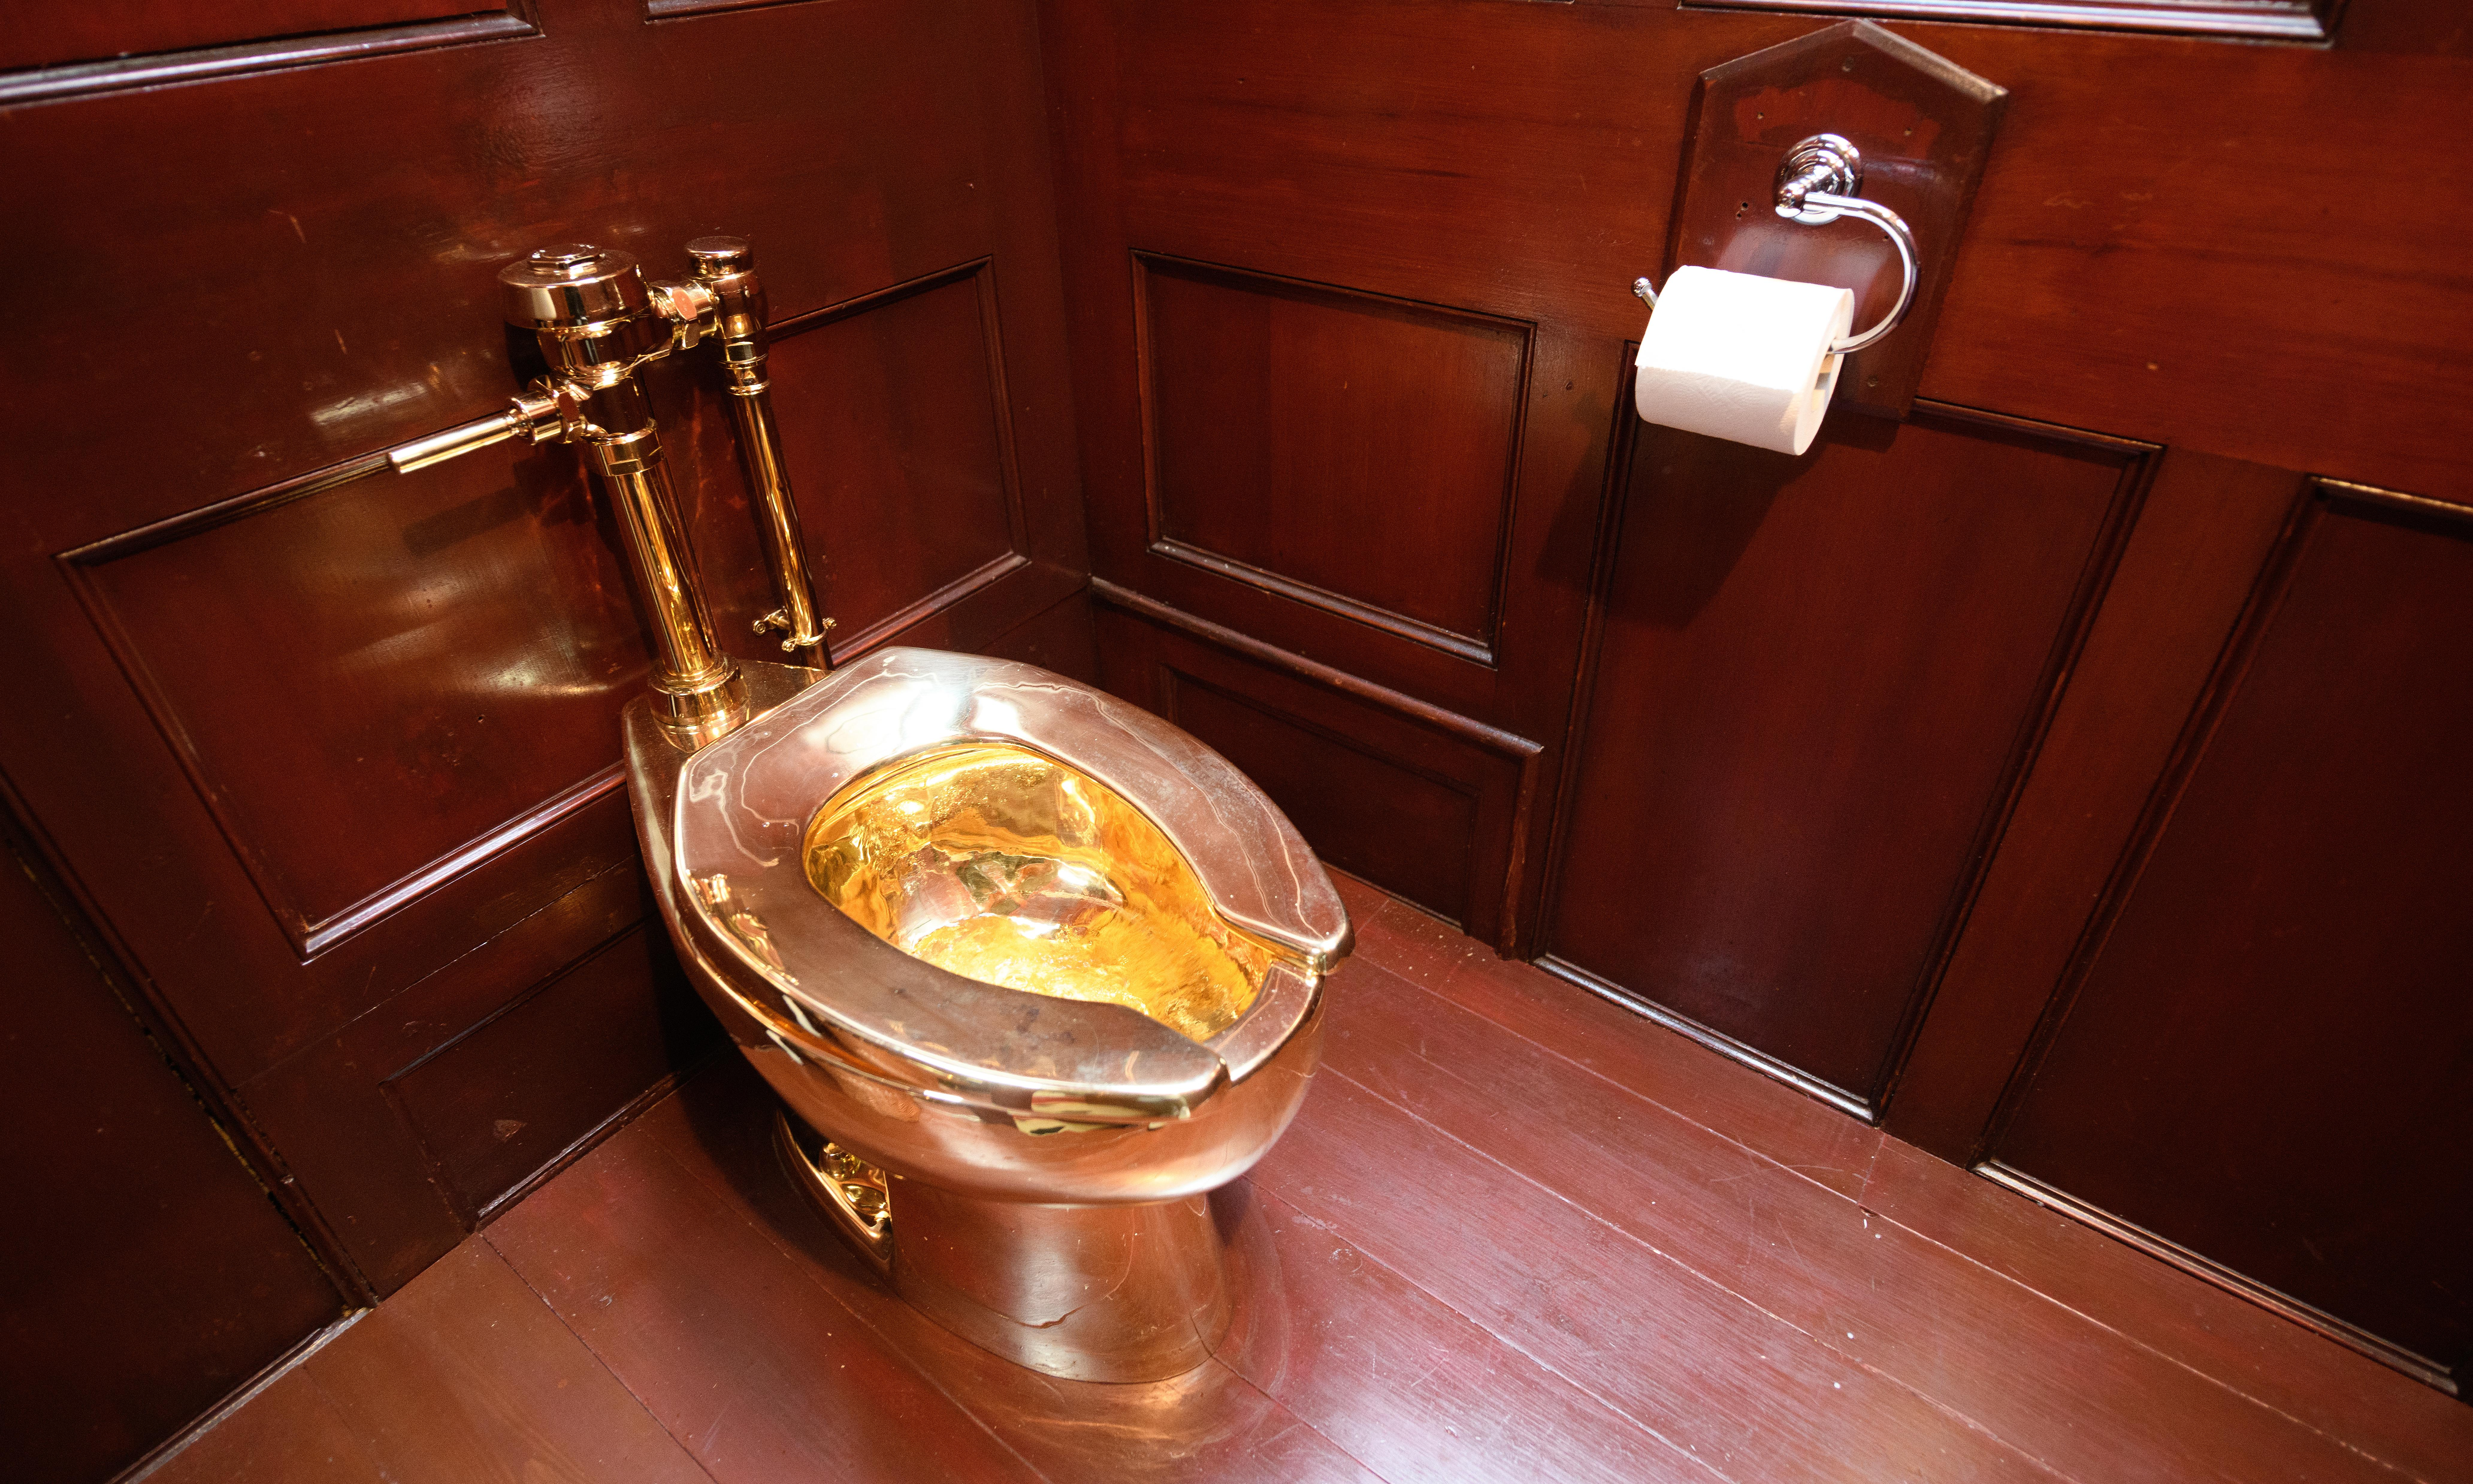 Three arrested over Blenheim Palace gold toilet theft